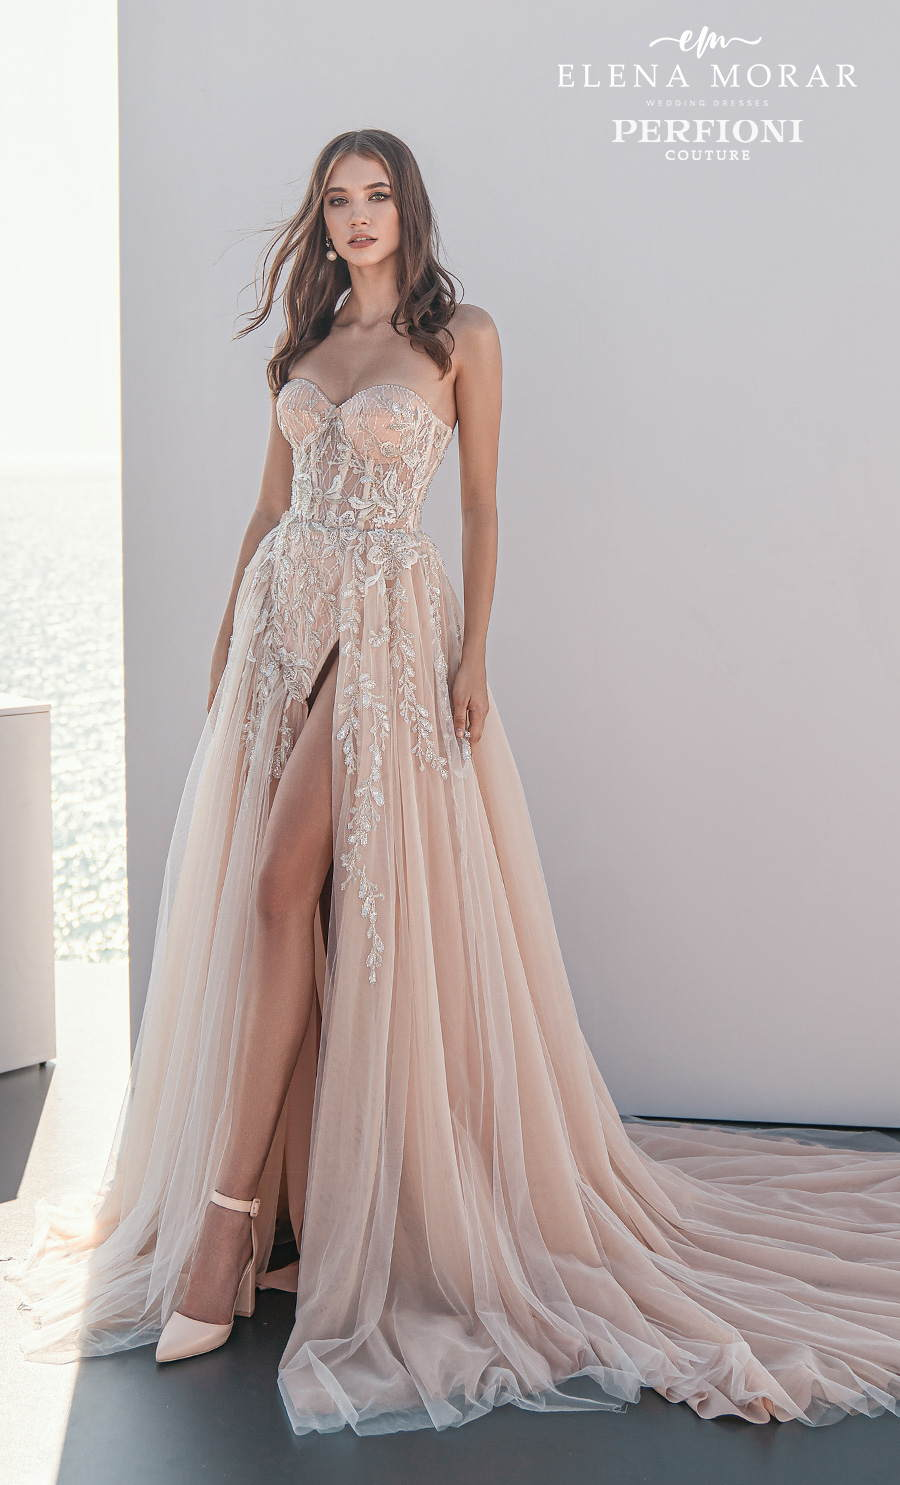 elena morar perfioni 2021 bridal strapless sweetheart neckline full embellishment slit skirt romantic glamorous blush a line wedding dress corset back chapel train (01) mv